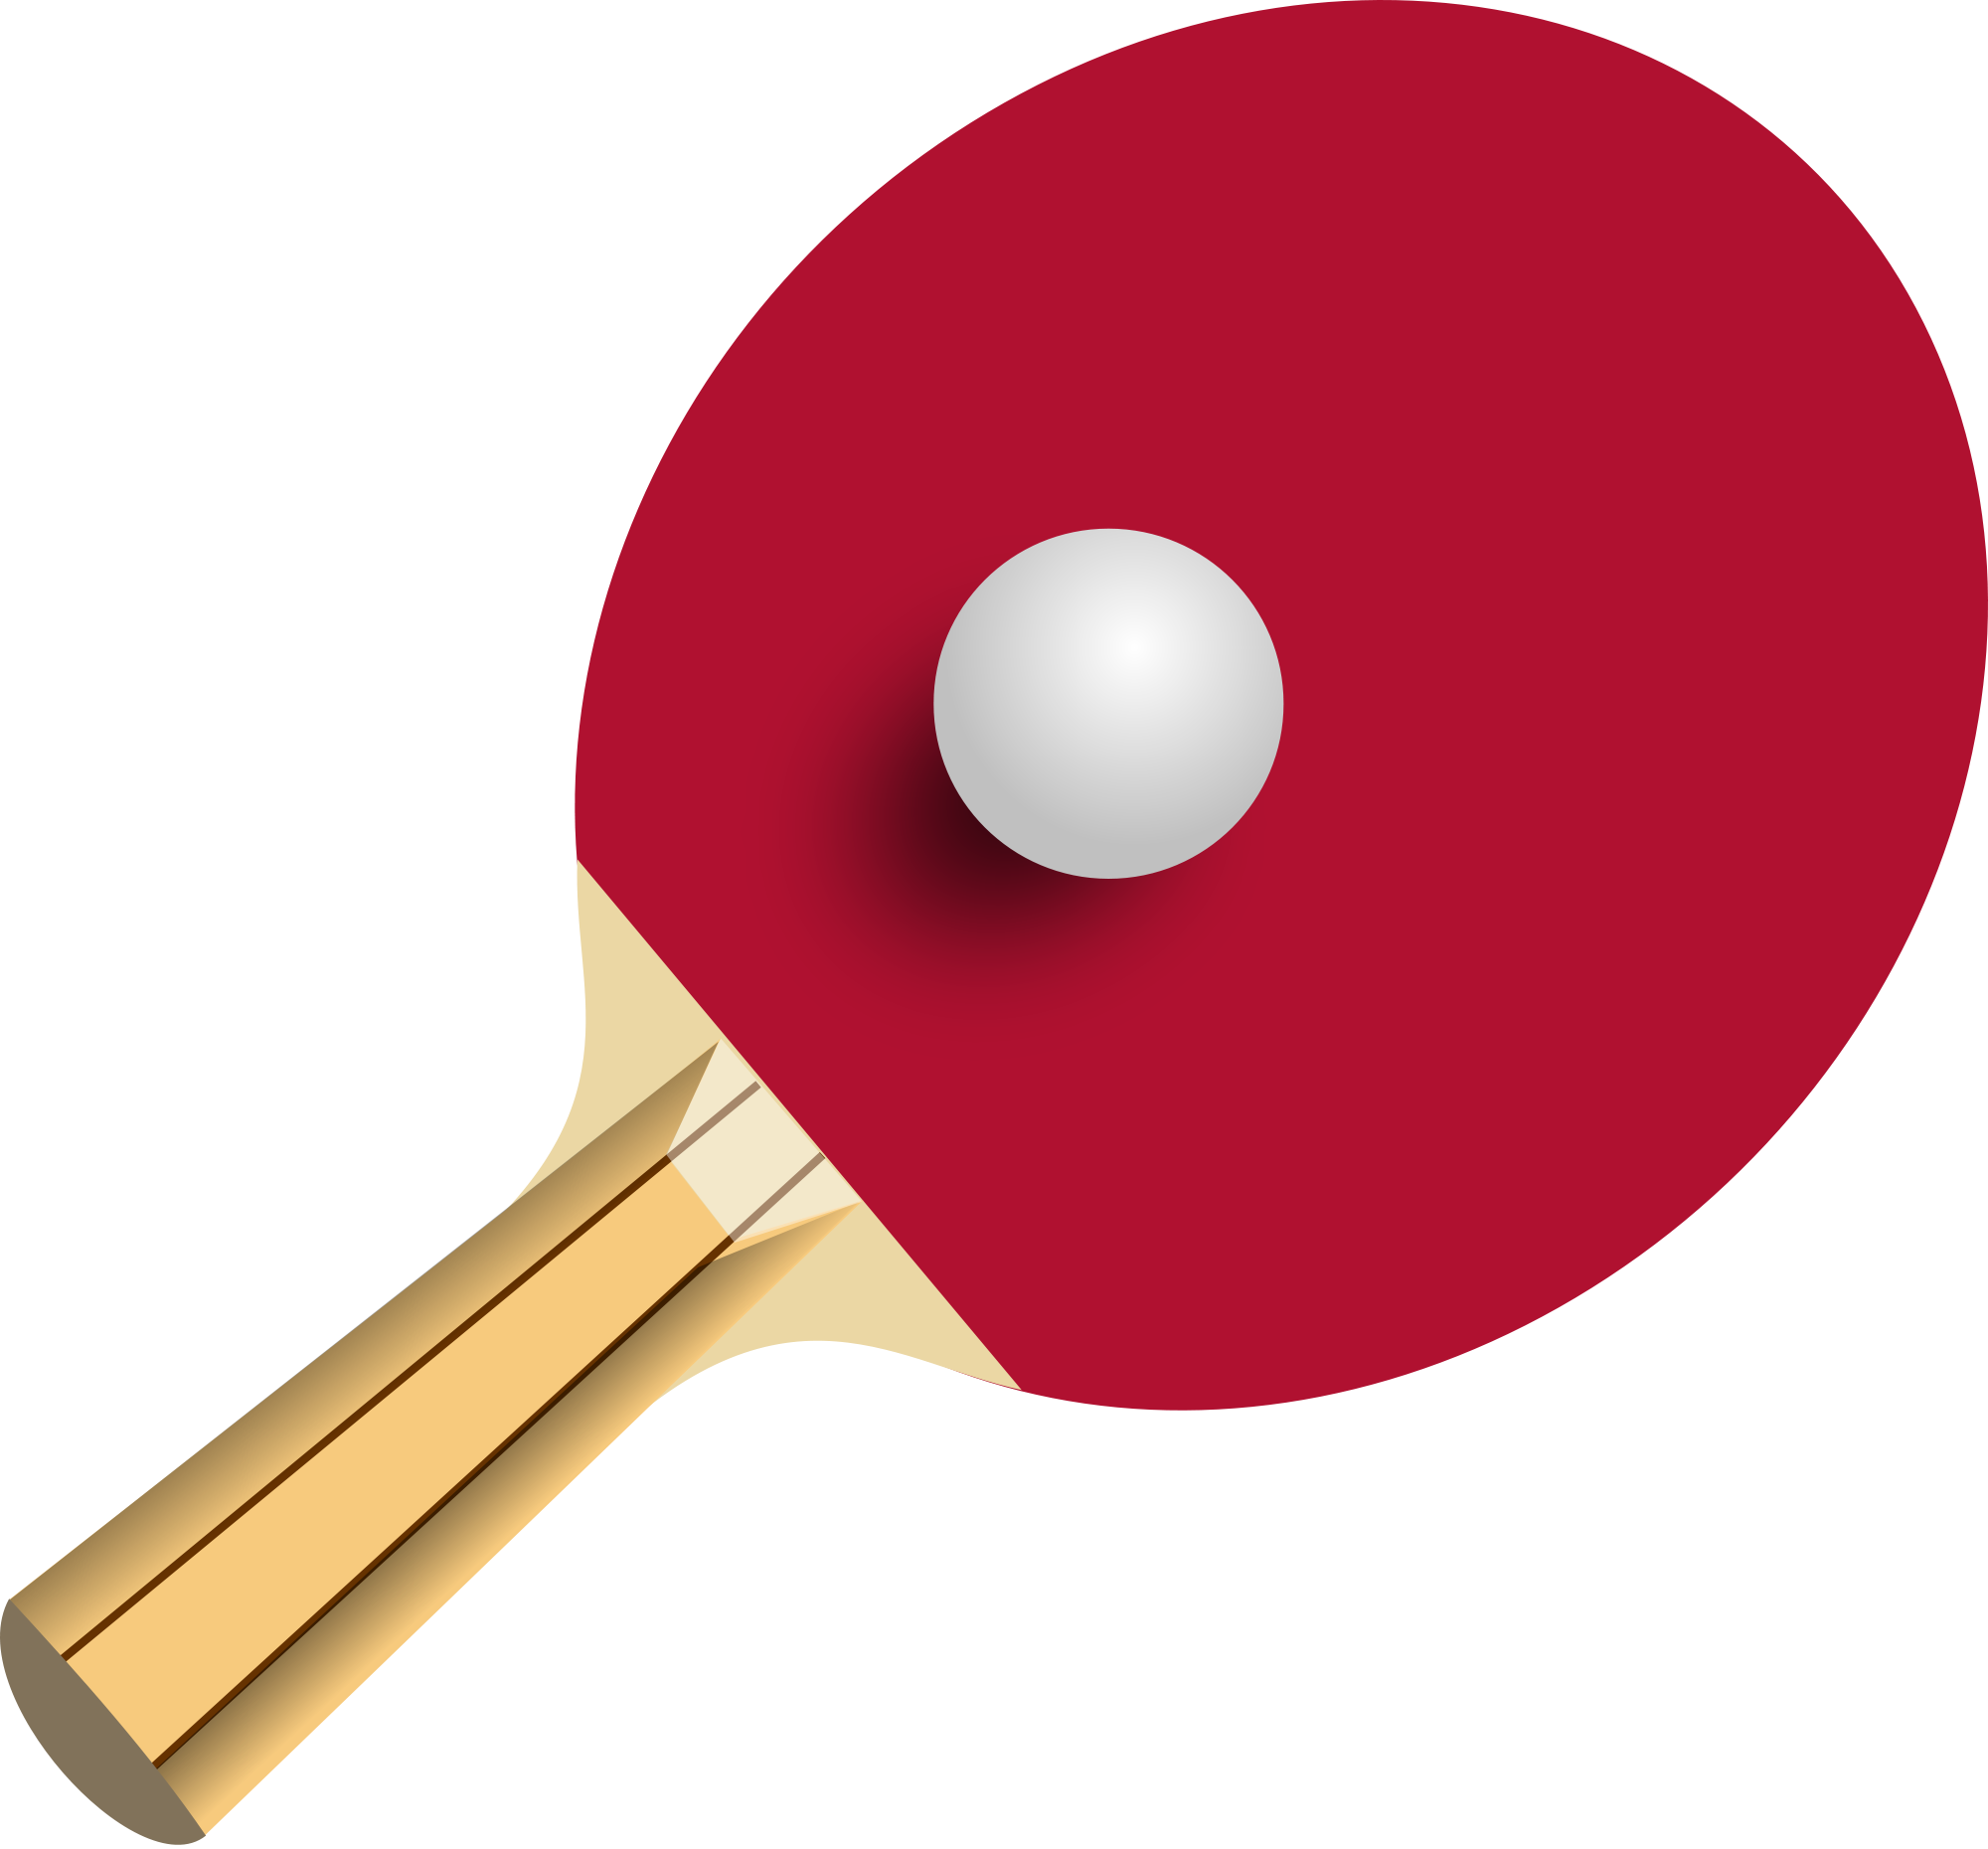 Ping pong clipart 3 » Clipart Station.